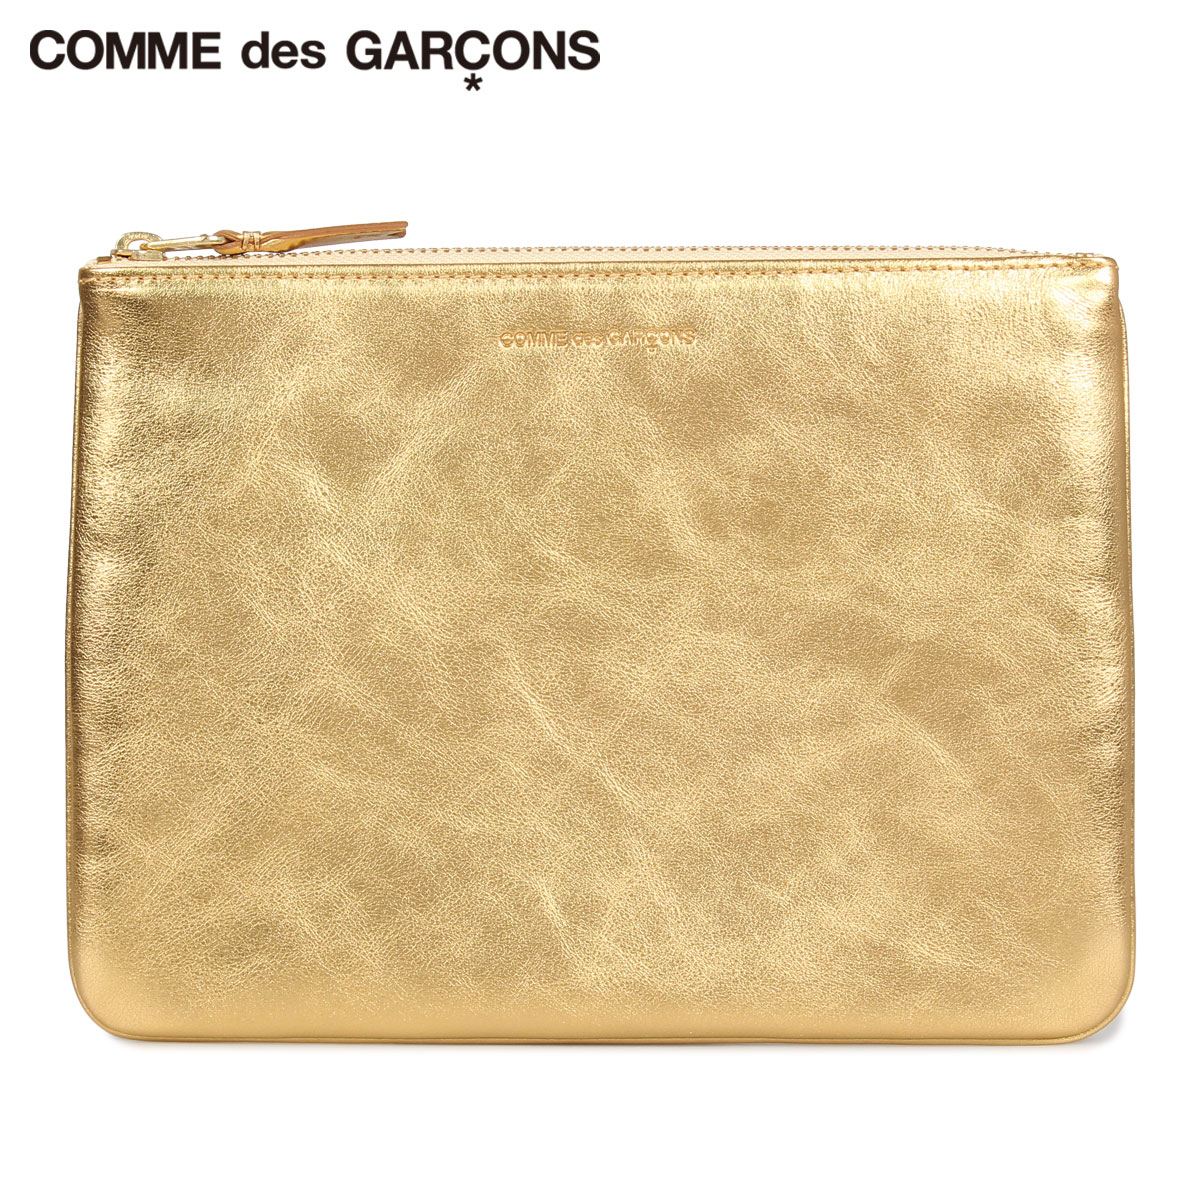 COMME des GARCONS GOLD AND SILVER COIN CASE コムデギャルソン 財布 小銭入れ コインケース メンズ レディース 本革 ゴールド SA5100G